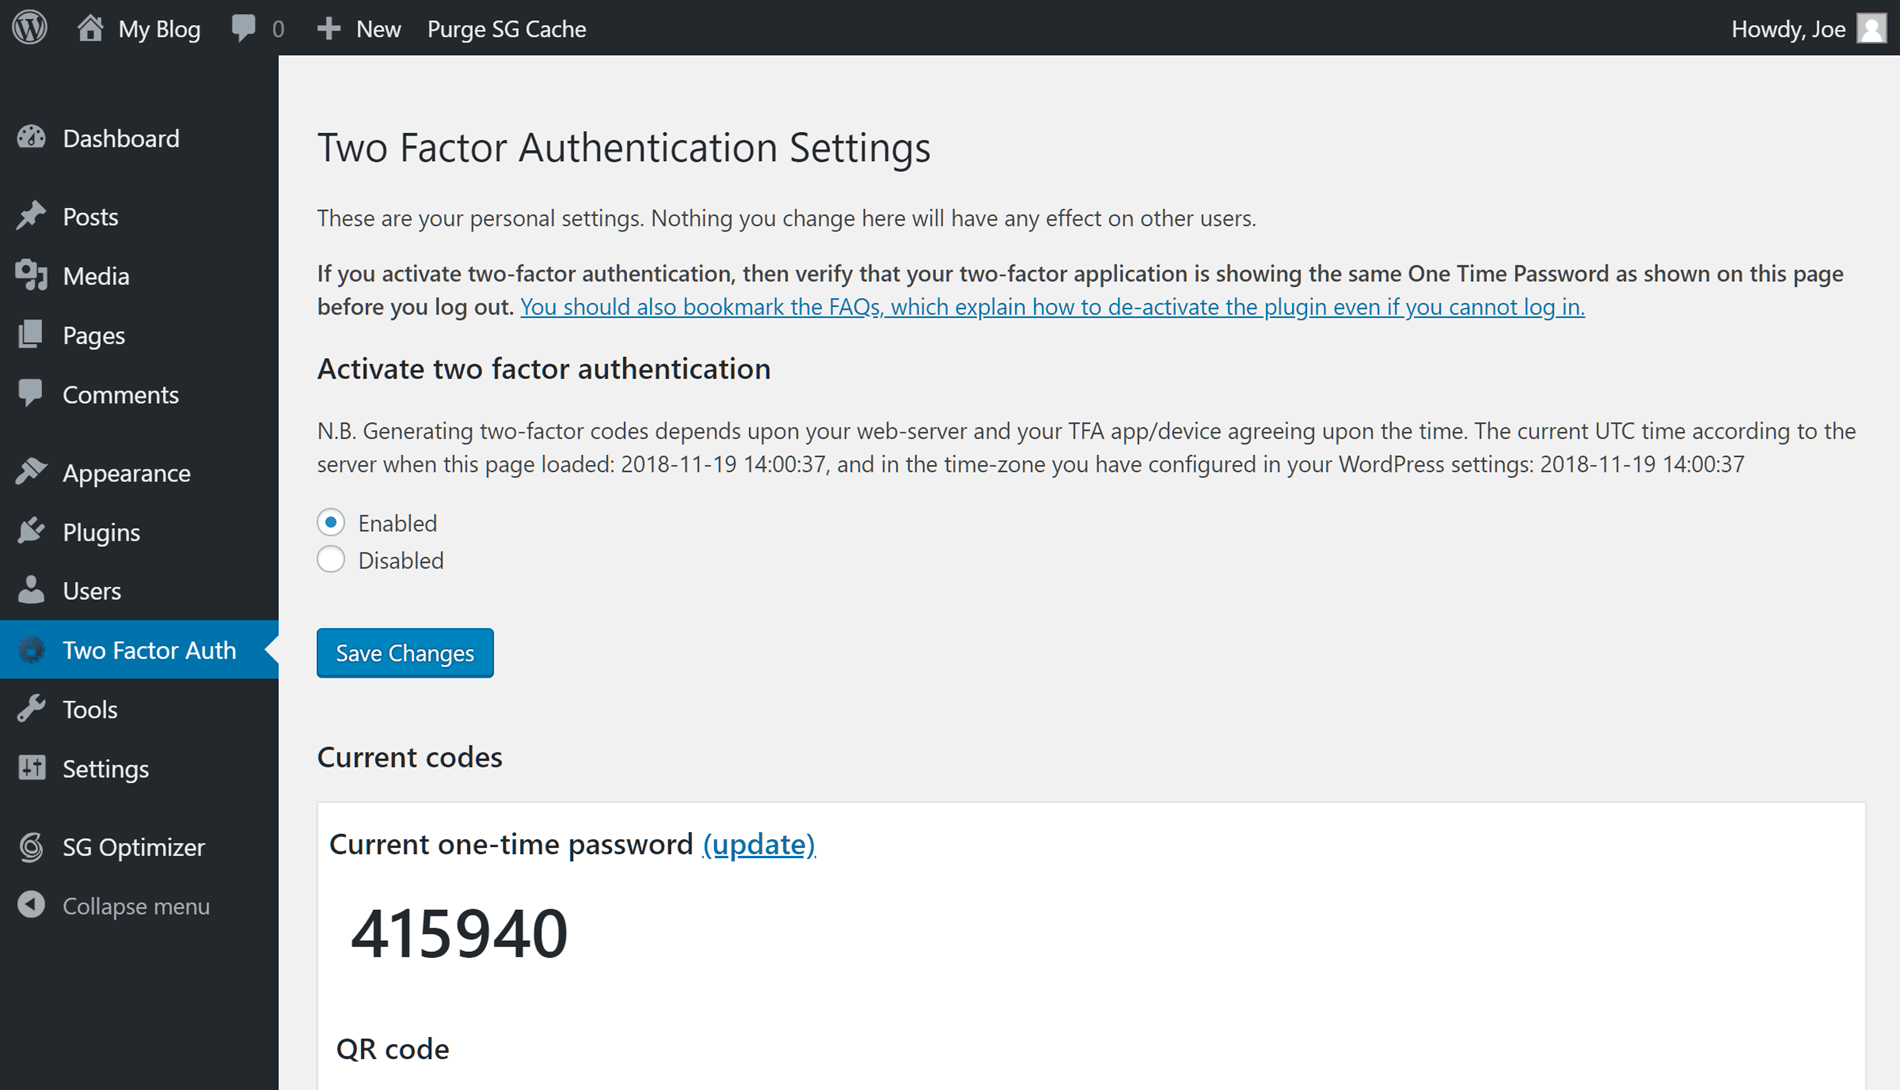 Two Factor Authentication Settings